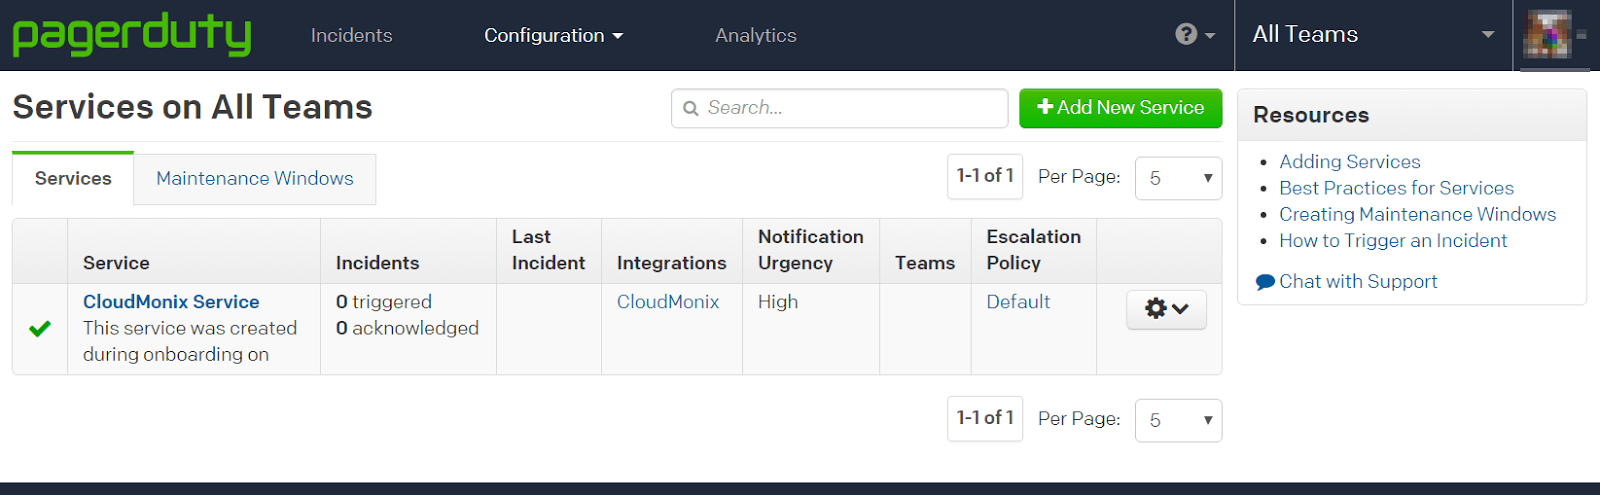 Netreo Essentials notifications in PagerDuty Integration